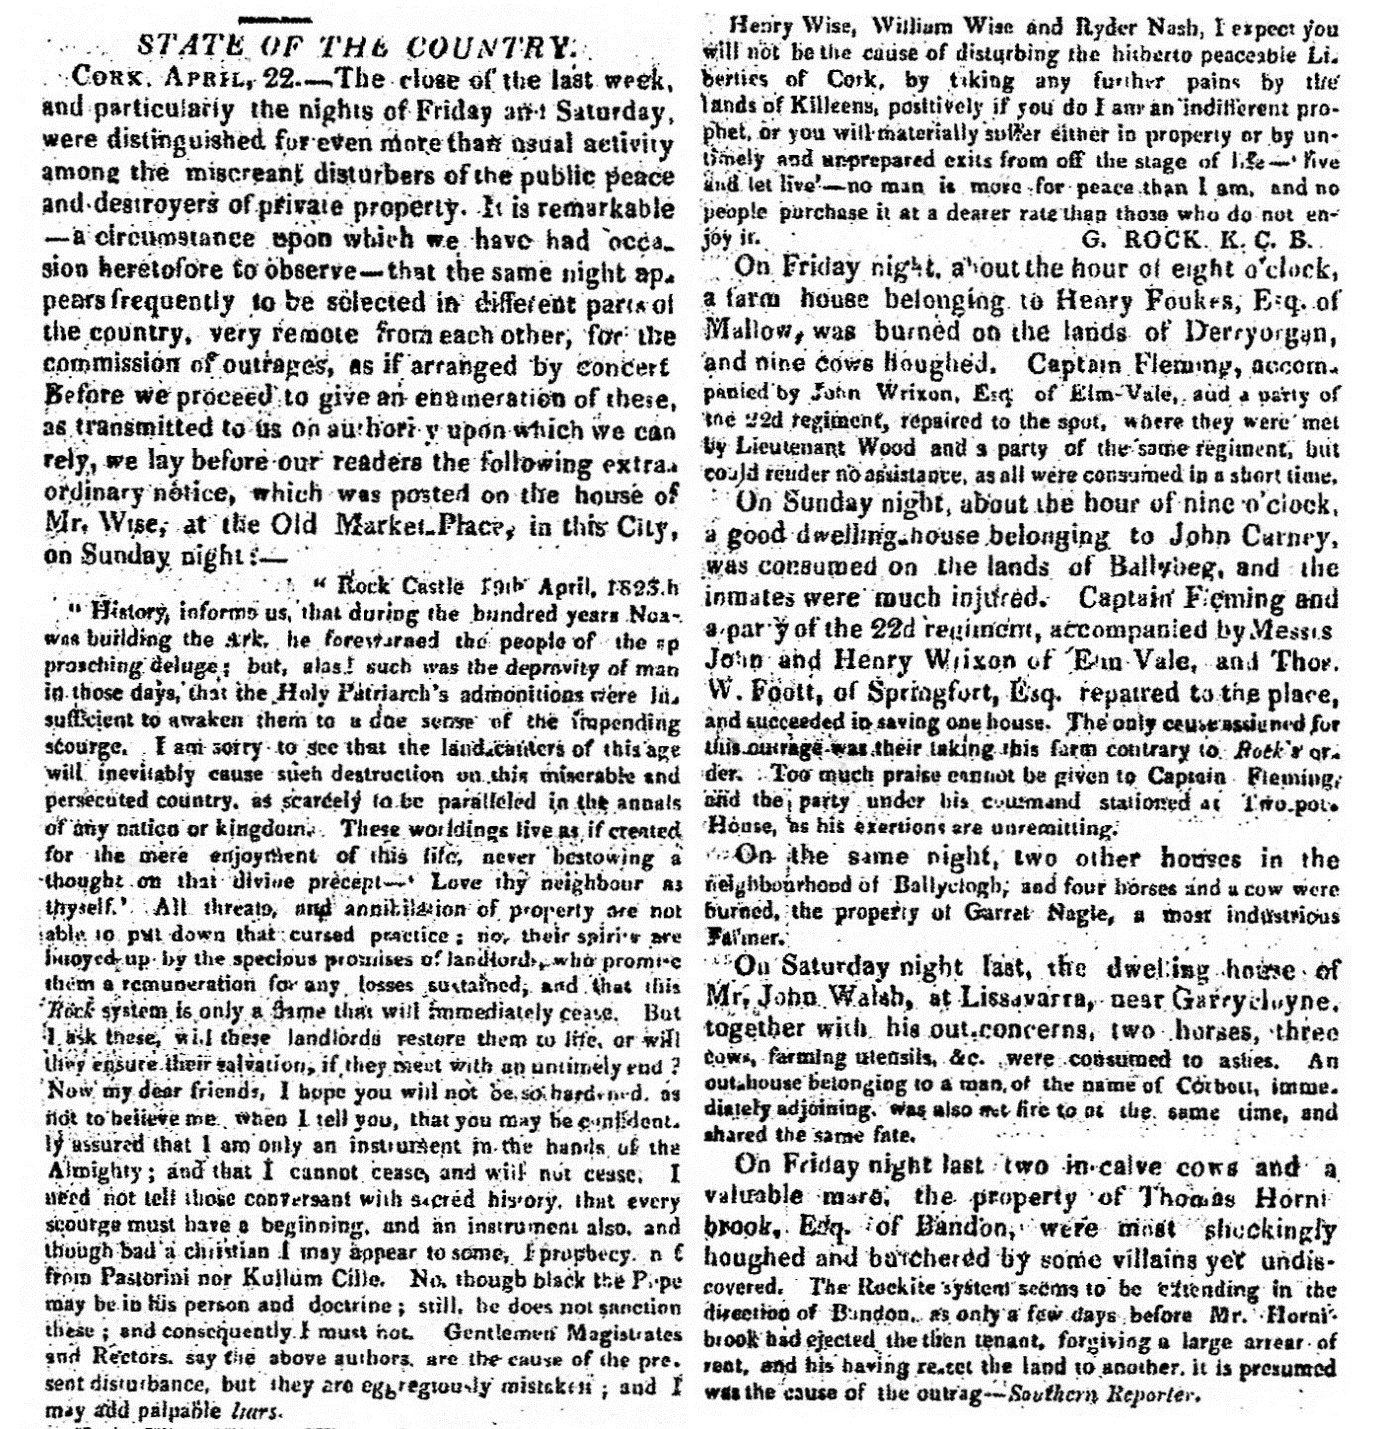 C:\Users\Virginia Rundle\Dropbox\VR\Ancestry Stuff\Rowan to unbuckle PDF's\Publication Freemans Journal 25 APR 1823 State-of-the-Country.png